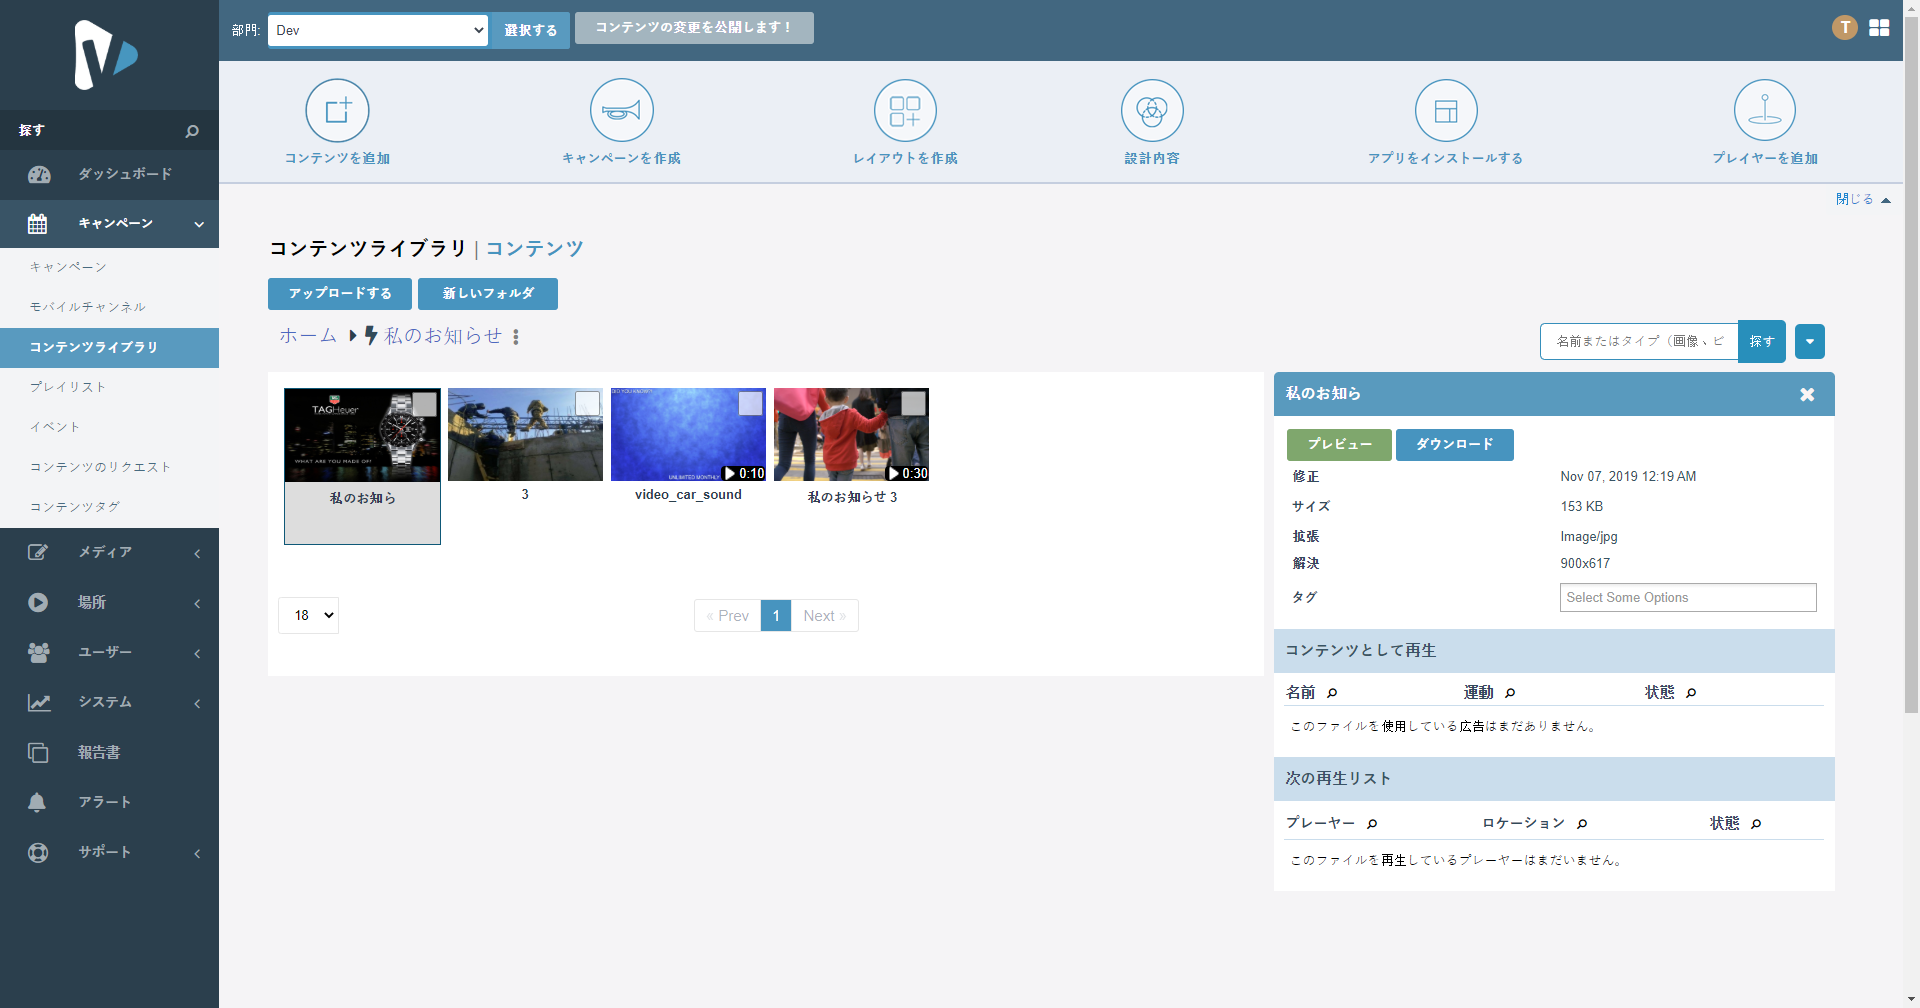 UCView Interface on Japanese Language